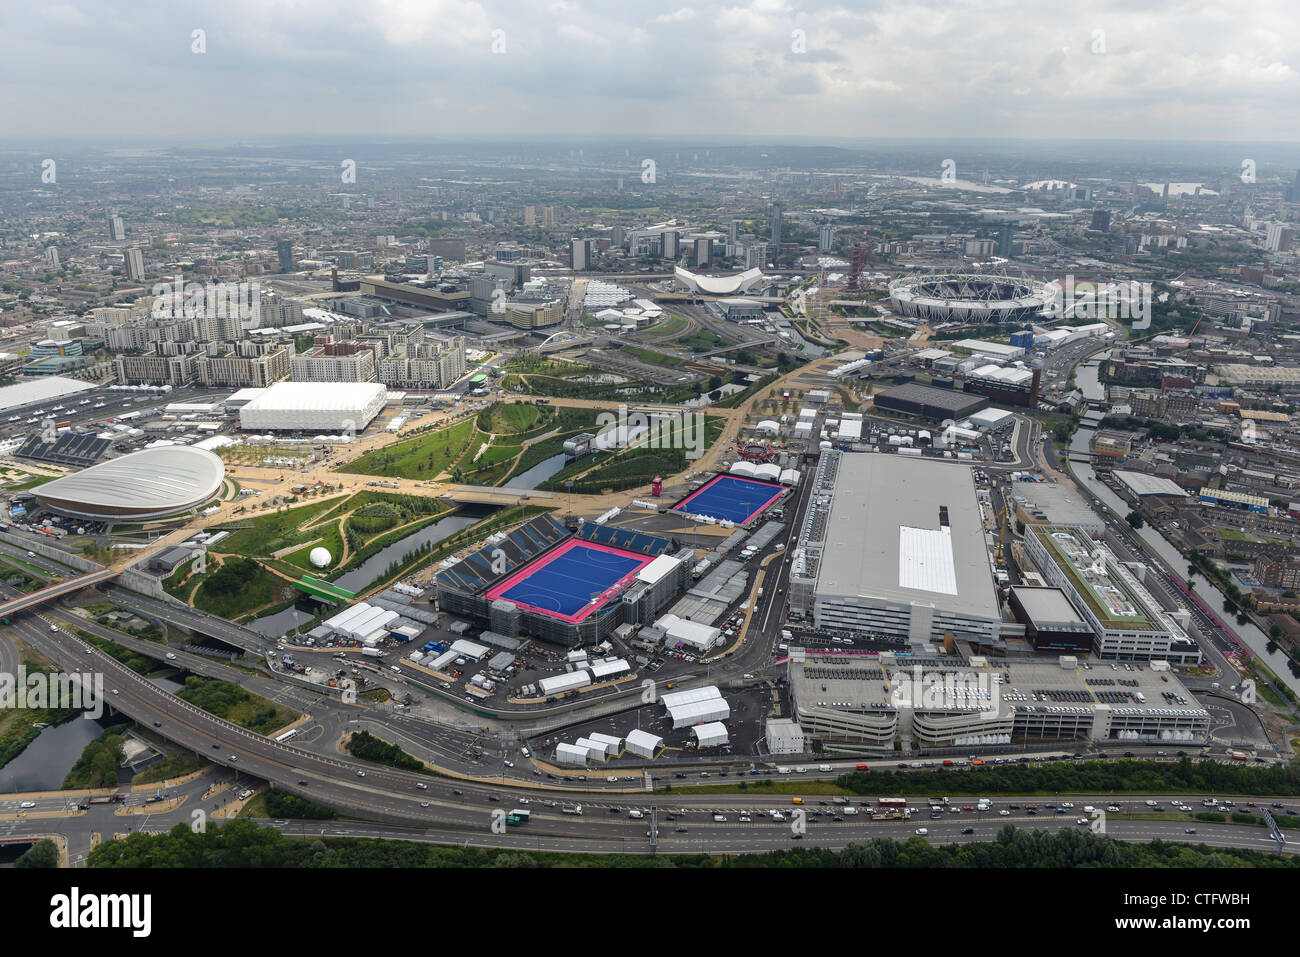 Aerial photograph of the London 2012 Olympic Park - Stock Image